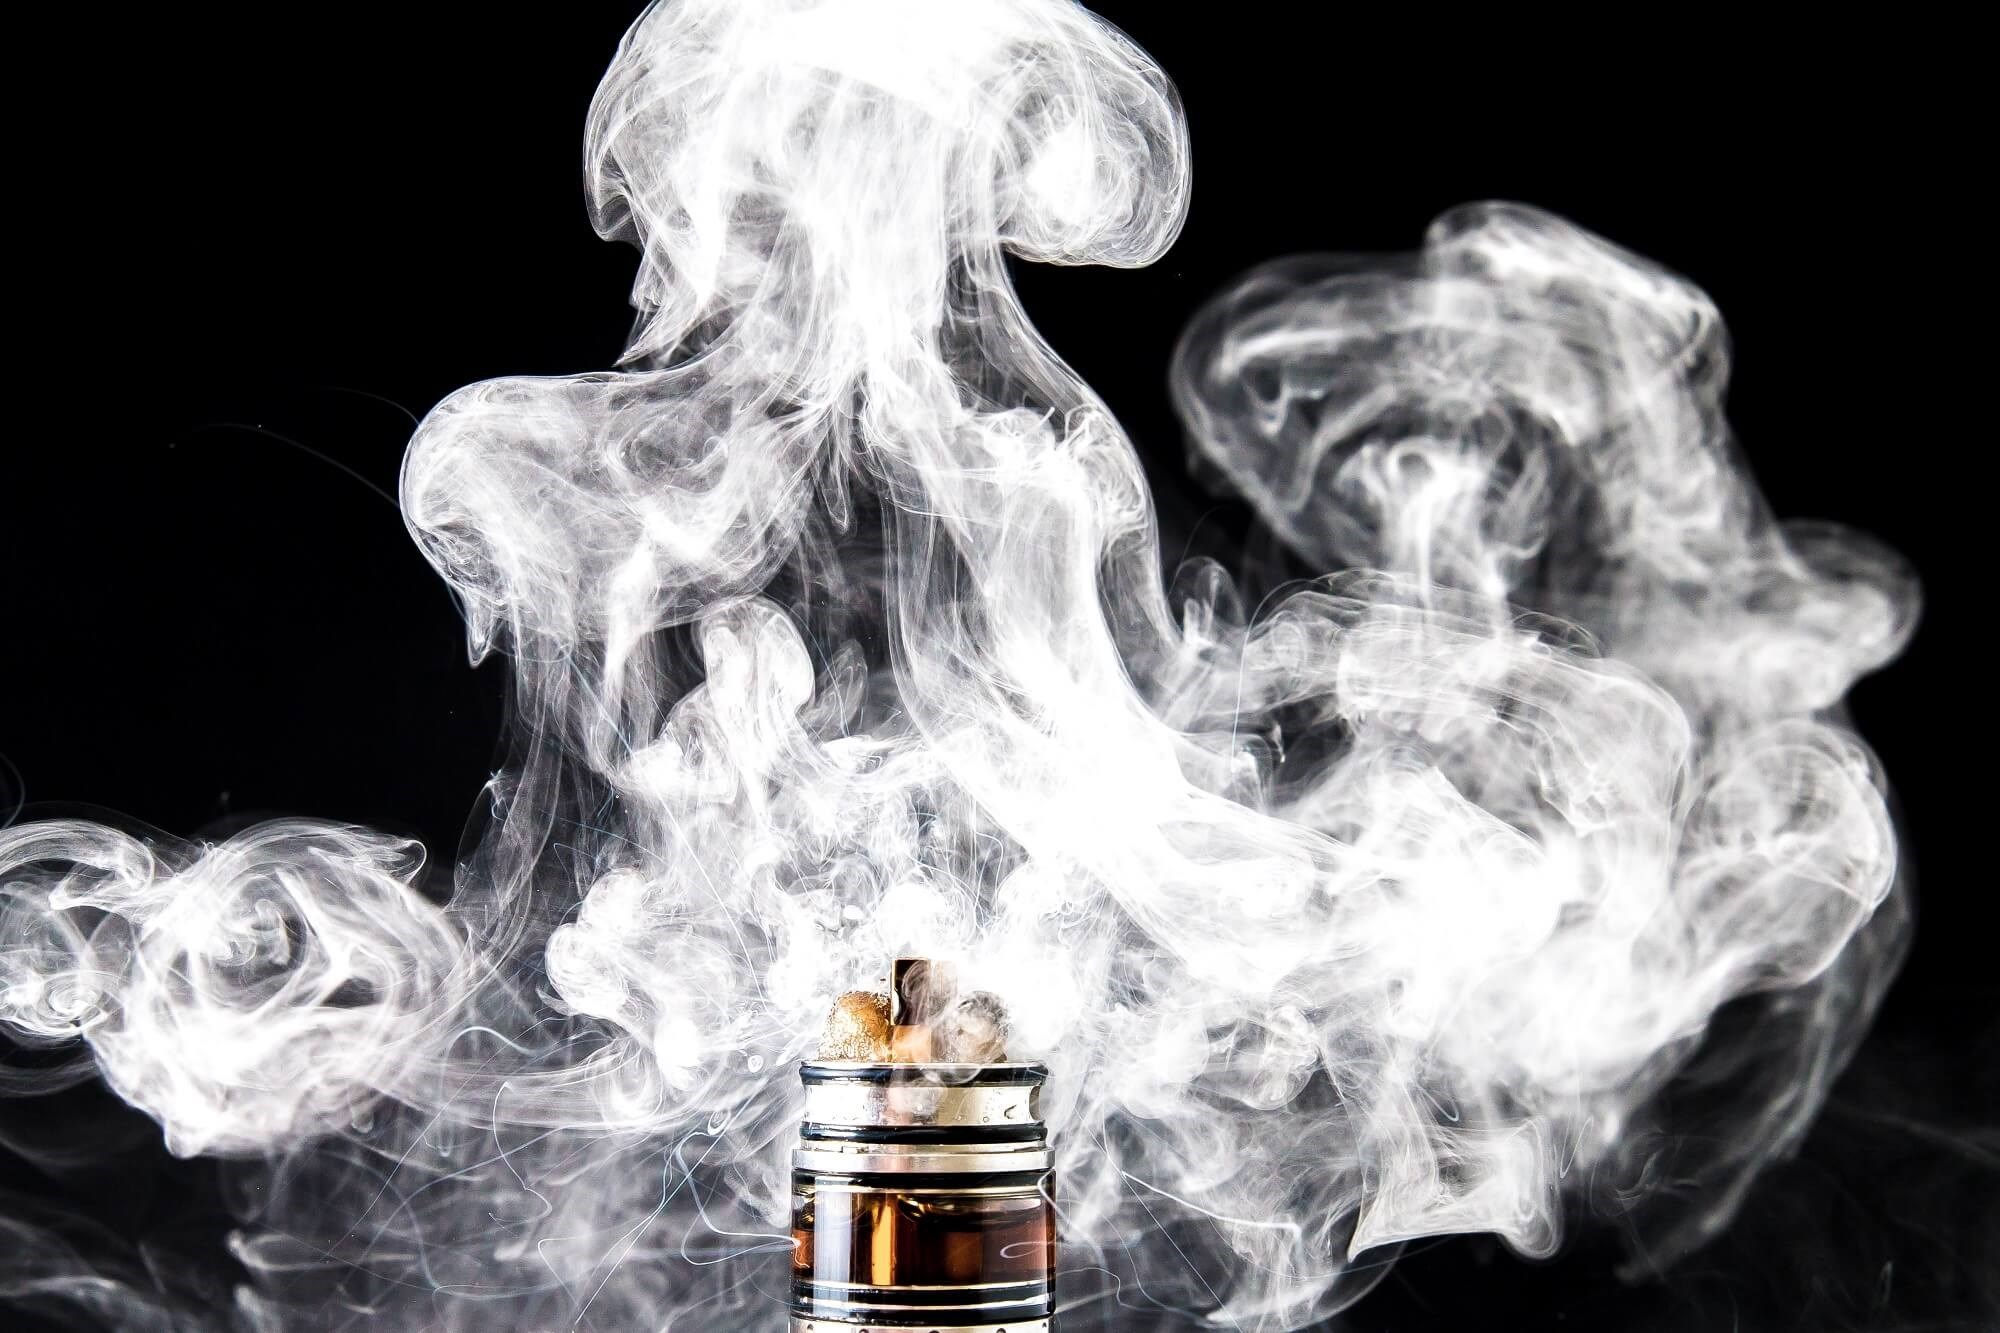 Adolescents are increasingly using e-cigarette products such as pod-based systems but have misperceptions and lack of knowledge about these products.